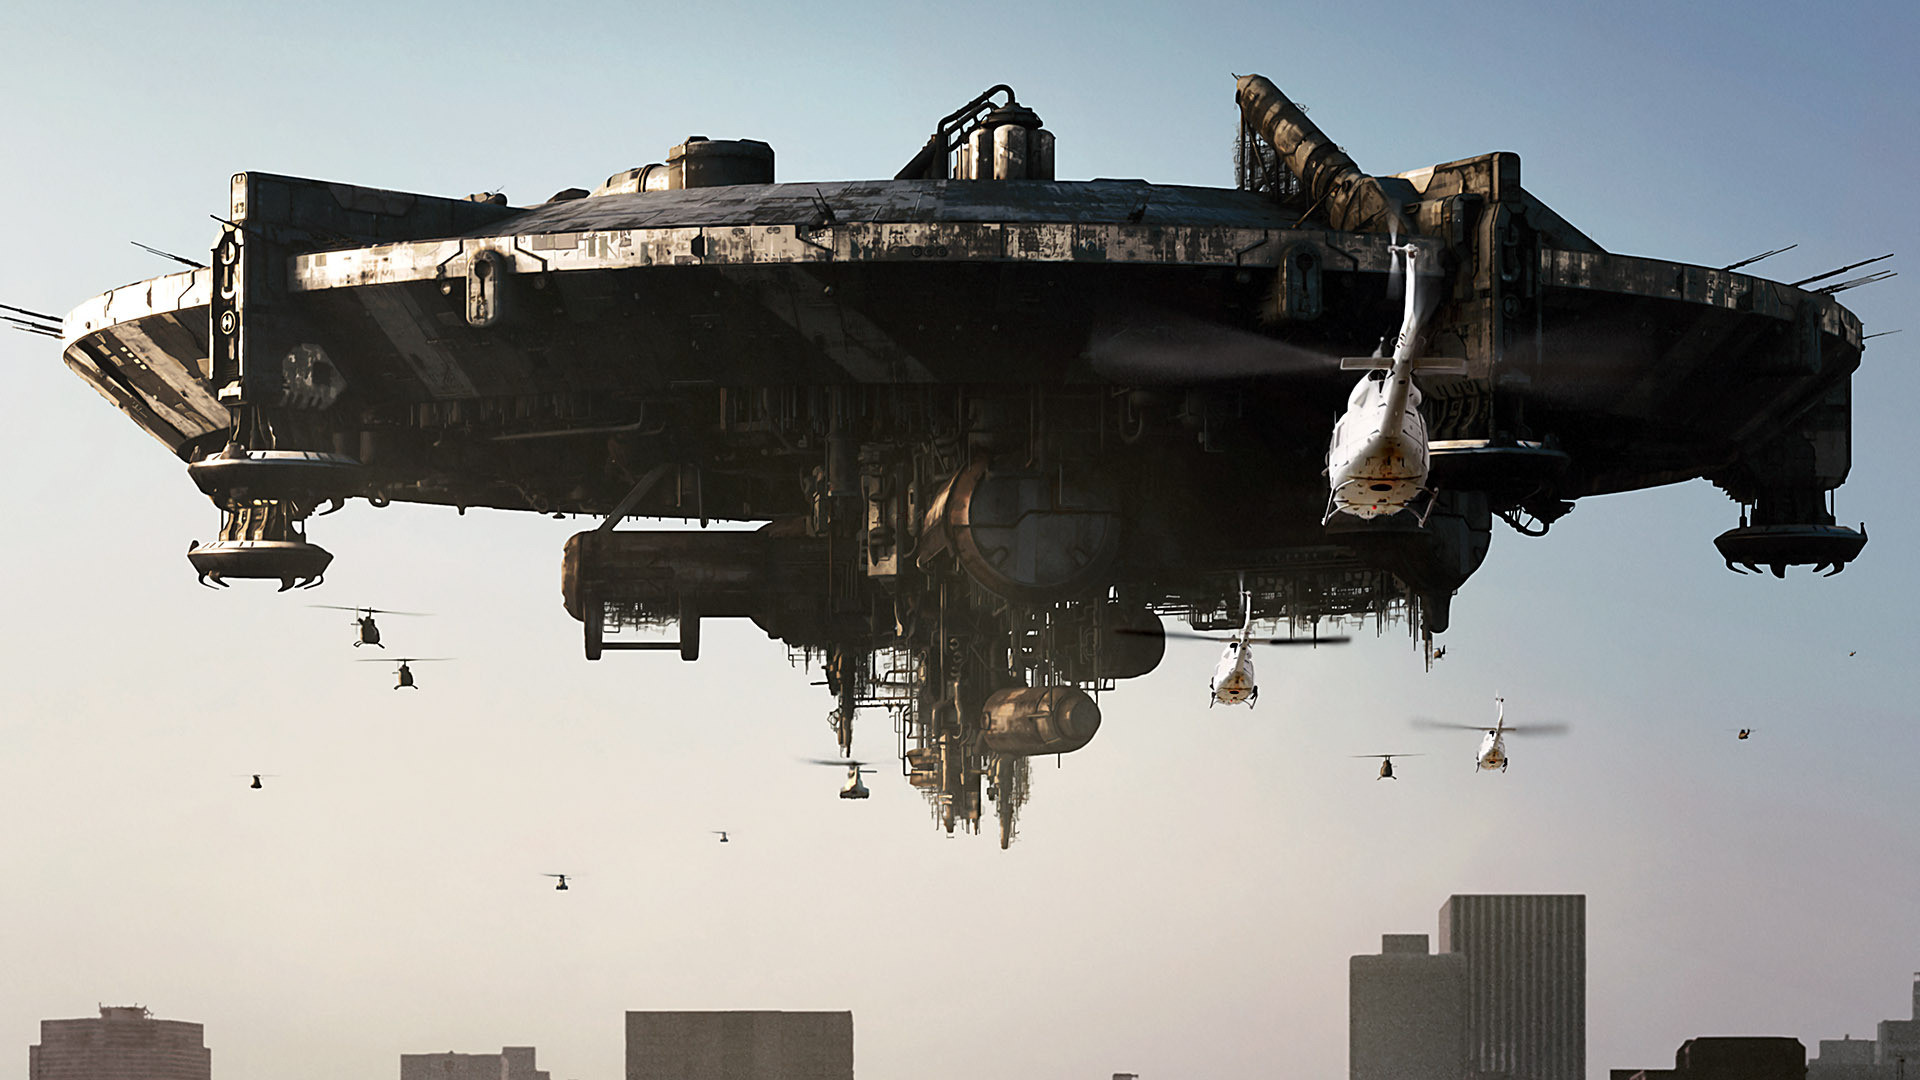 District 9 Spaceship